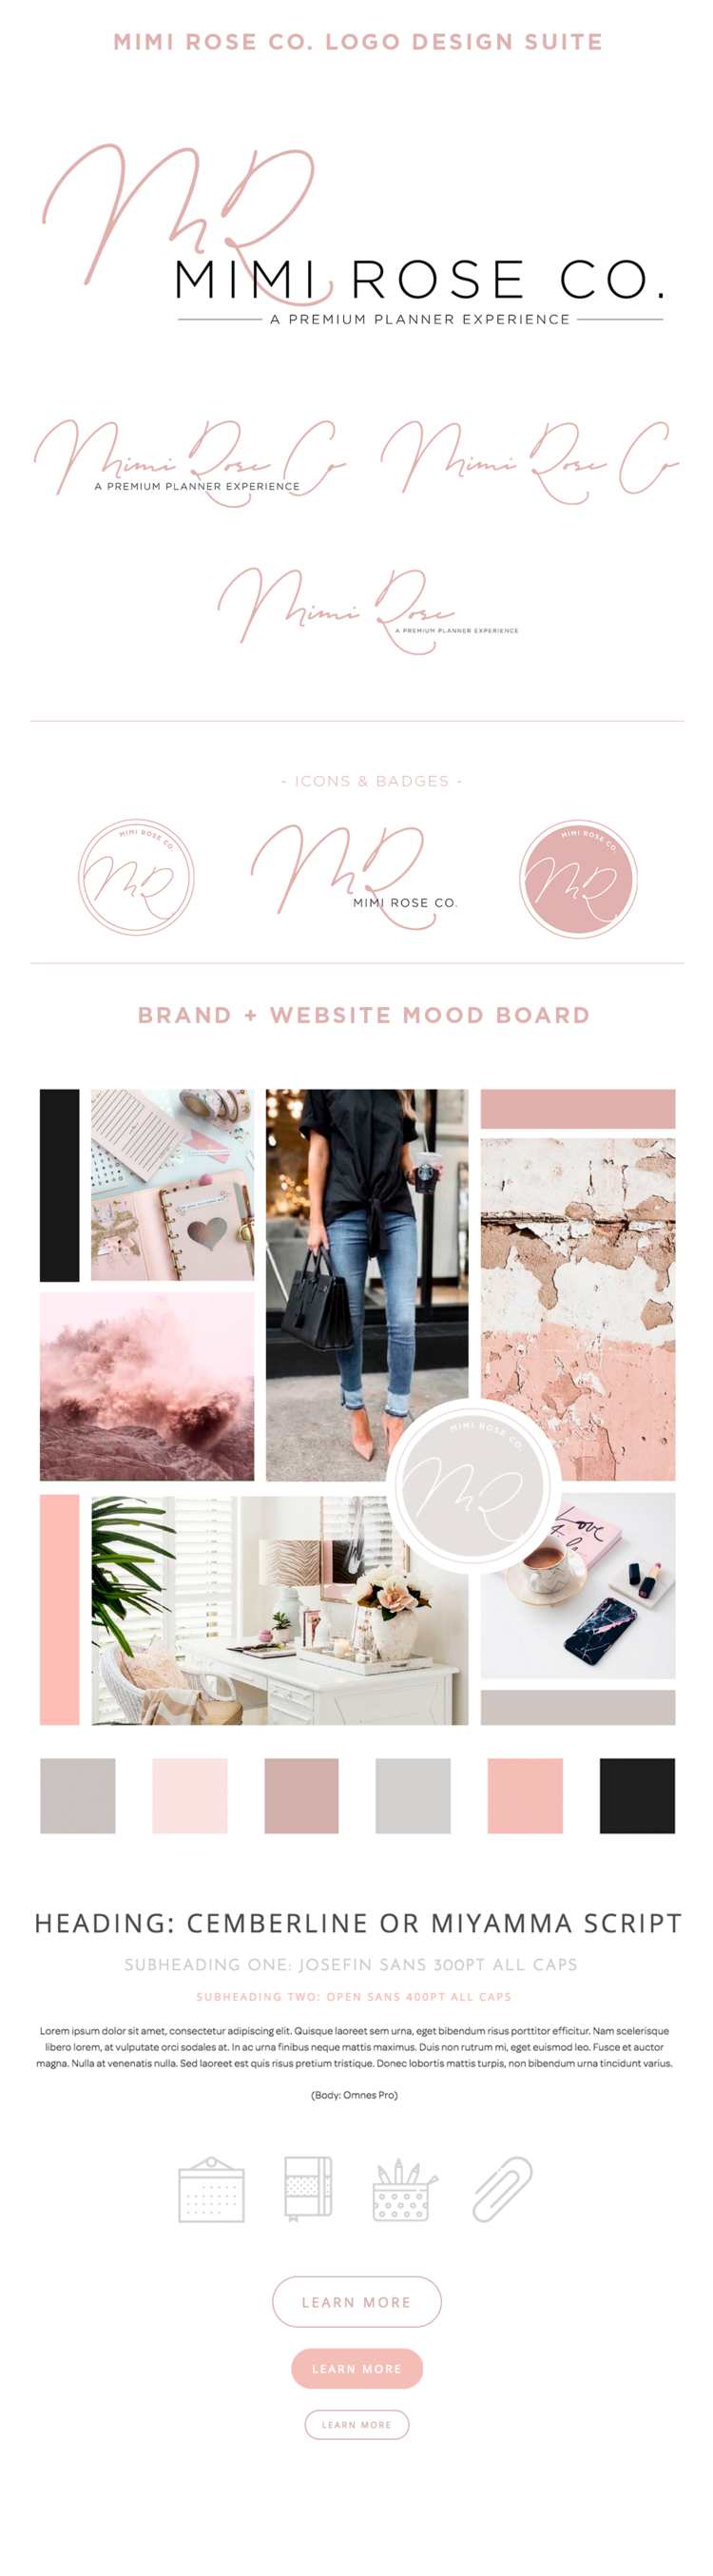 mimi-rose-co-brand-board.png